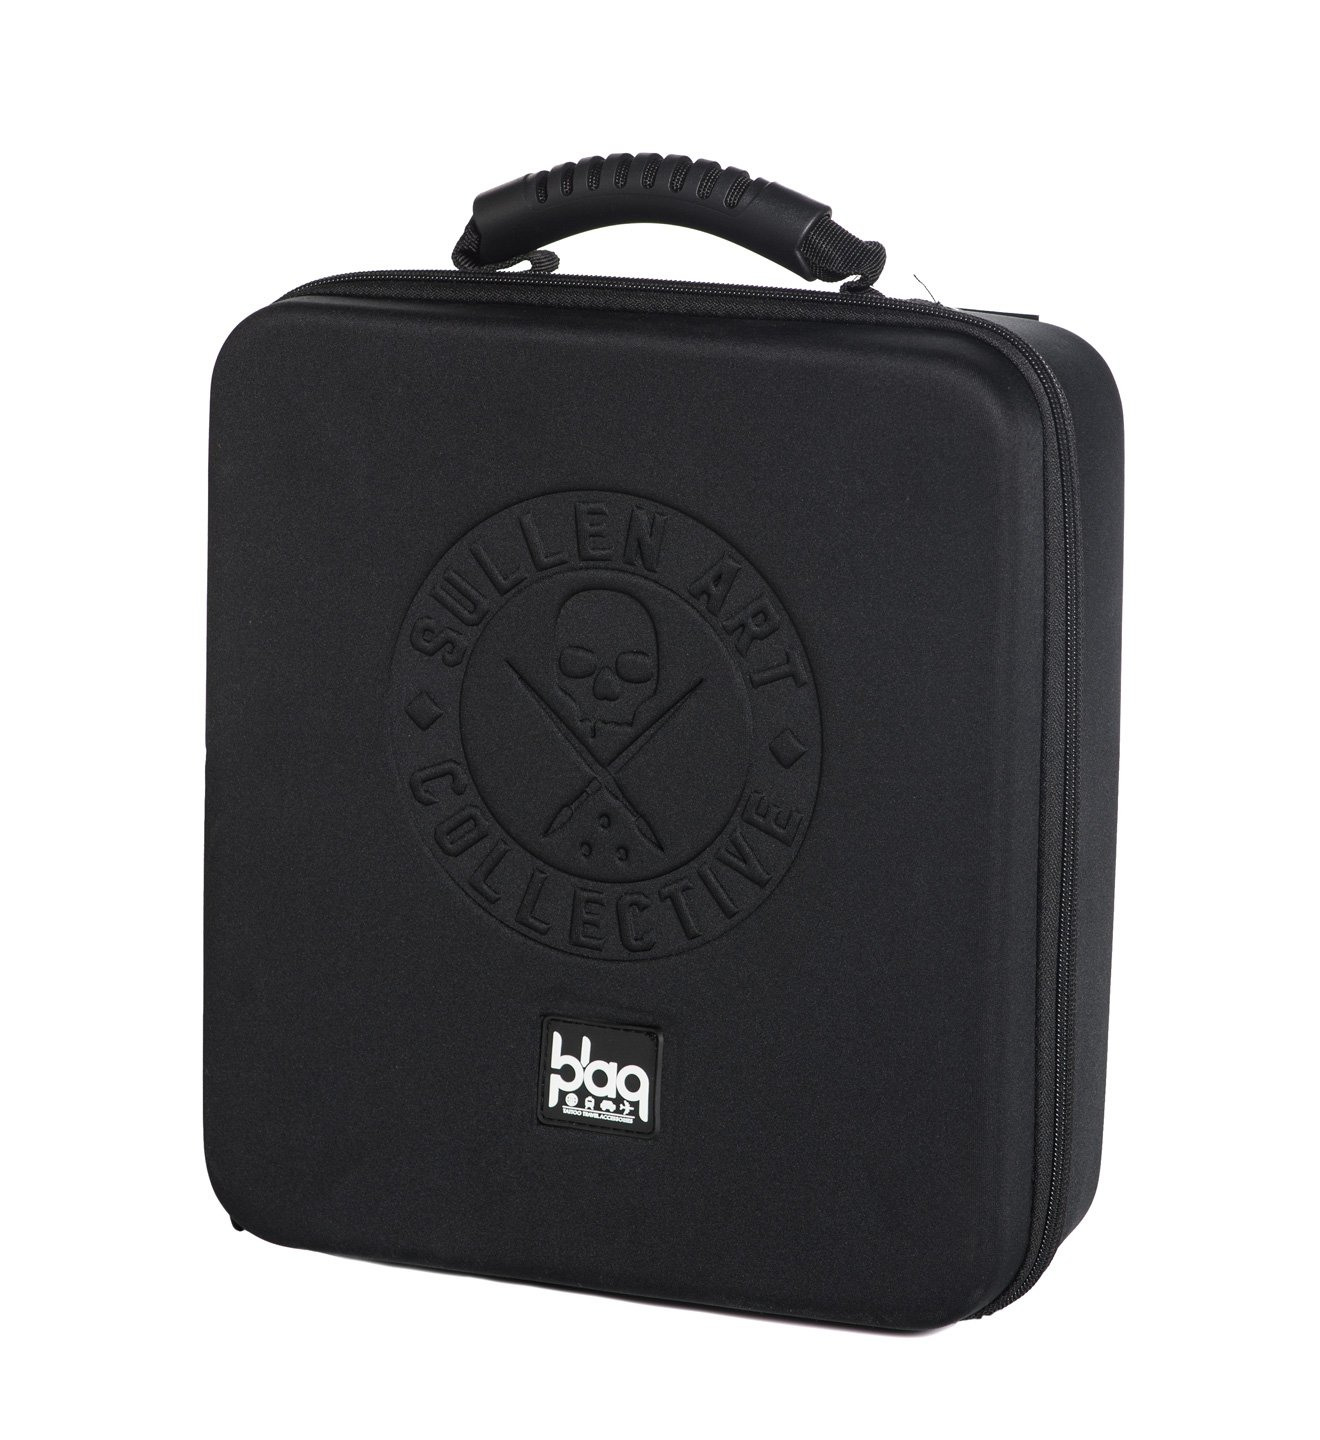 Sullen Jurni Blaq Pod EVA Equipment Case Sullen Clothing